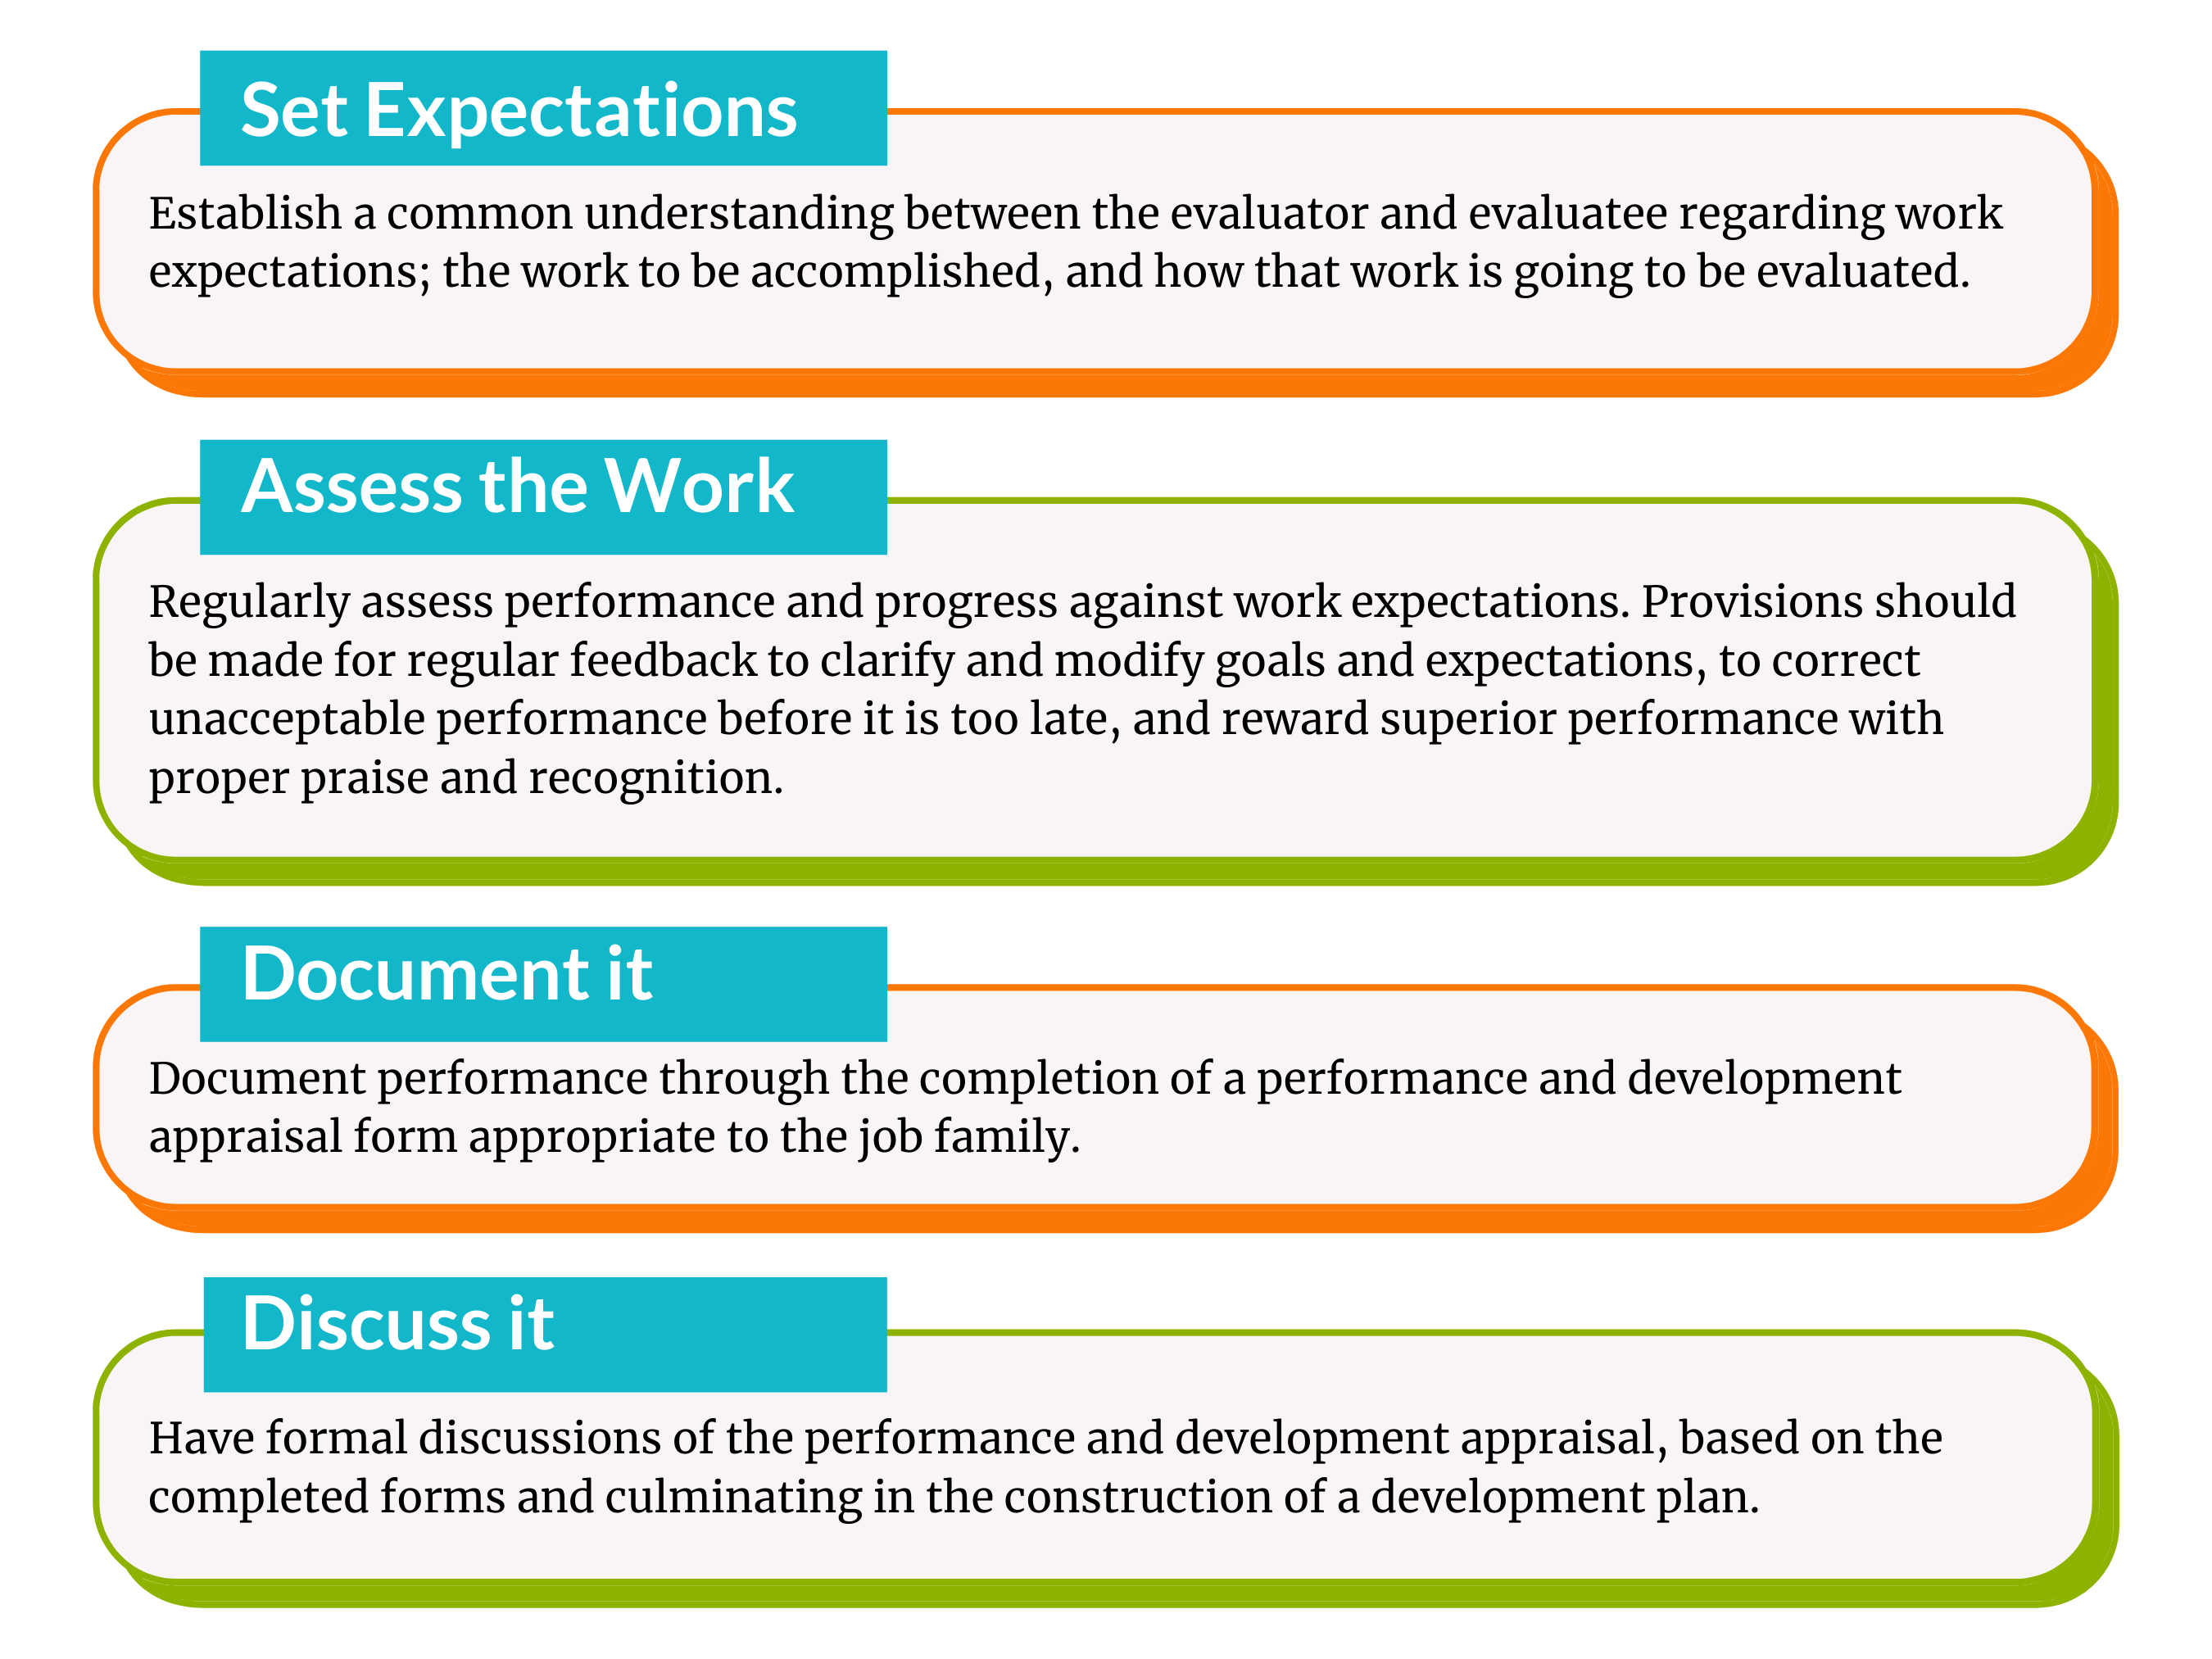 Establish a common understanding between the evaluator and evaluatee regarding work expectations; the work to be accomplished, and how that work is going to be evaluated. (5)